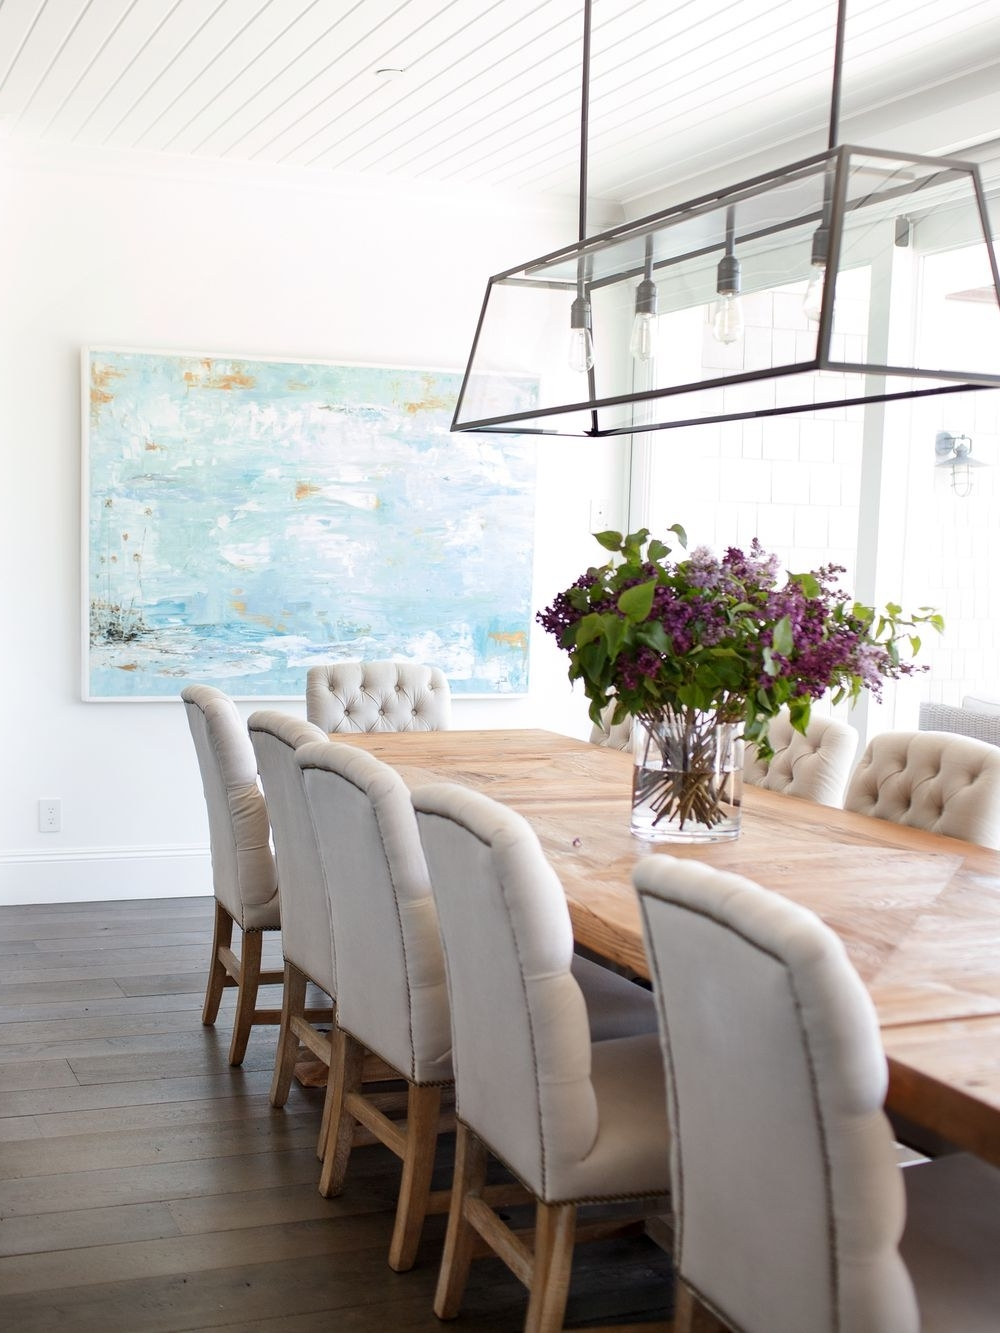 Most Popular Over Dining Tables Lights With Beachy Dining Room Beadboard Ceiling, Linear Dining Room Light (View 7 of 25)